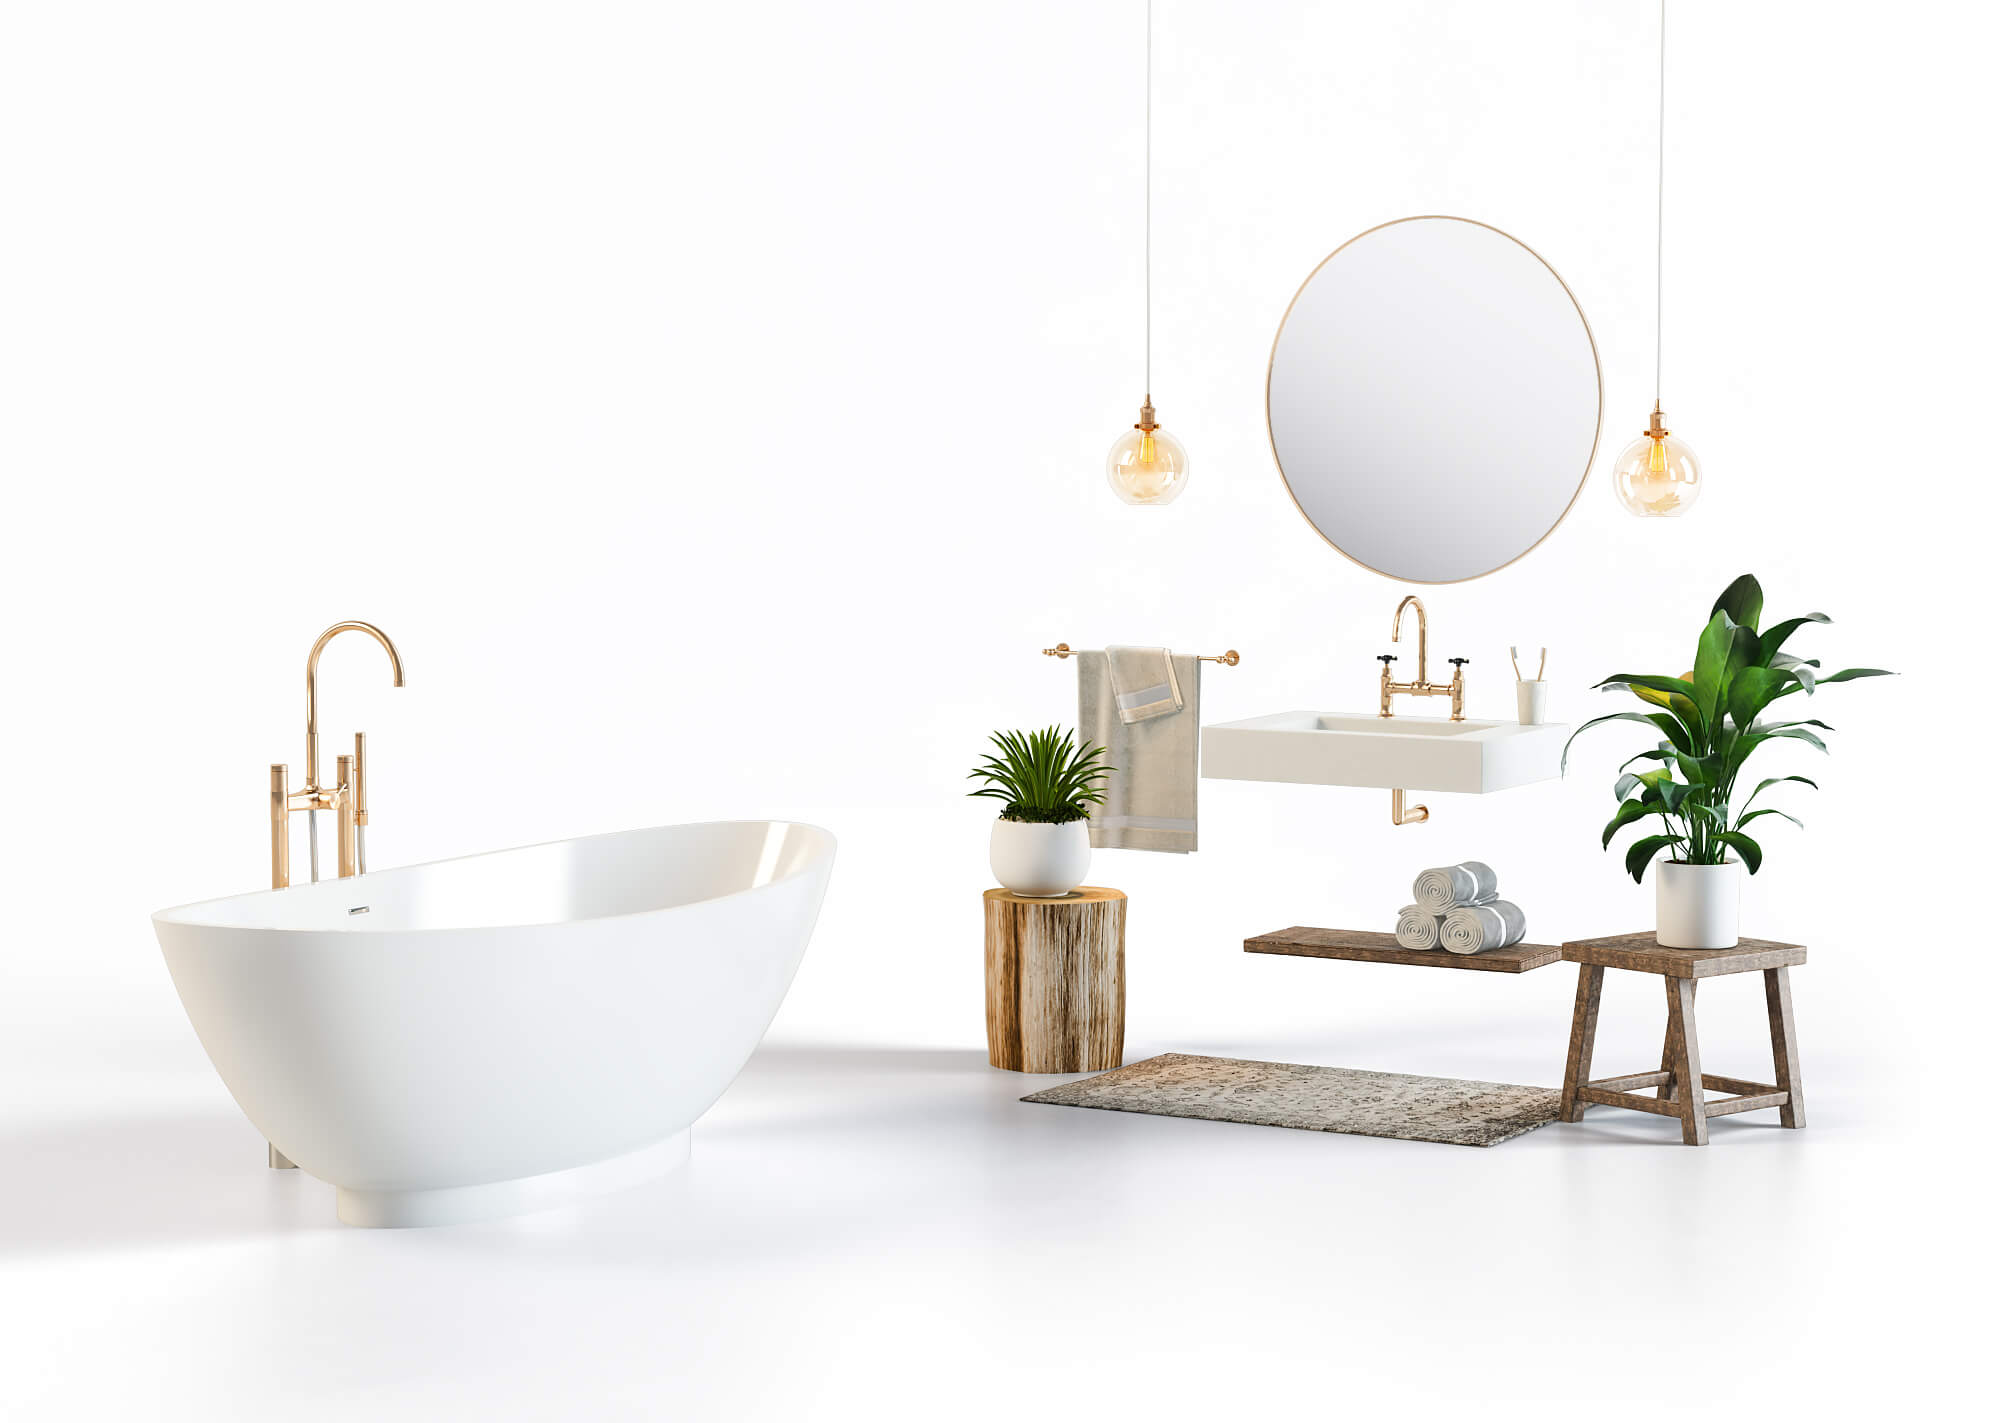 Product Rendering for a White and Gold Bathroom Set